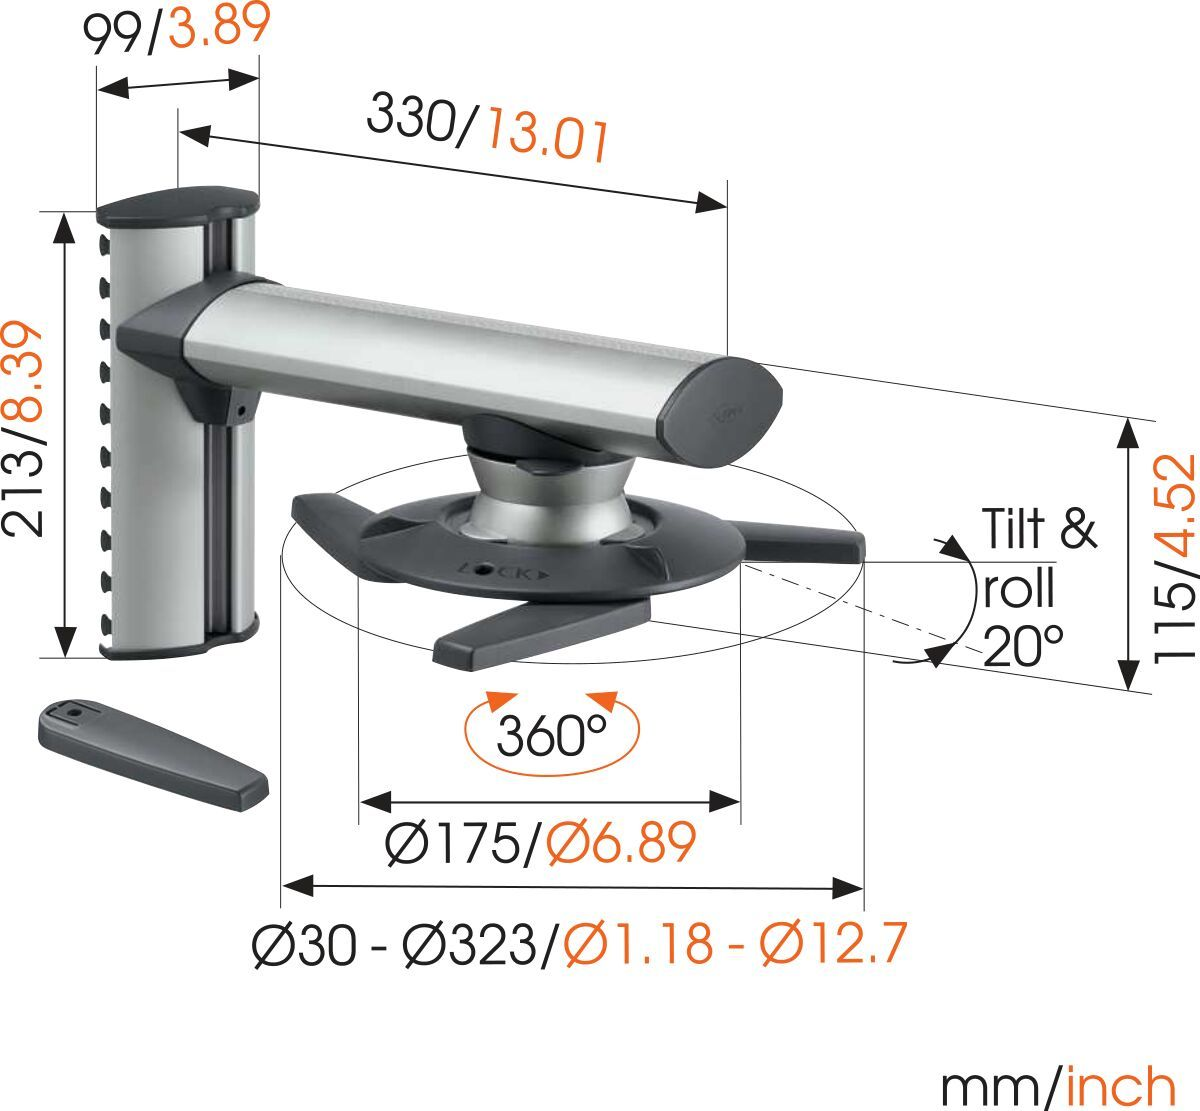 Vogel's EPW 6565 Projector Wall Mount - Max. weight load: 10 kg - Dimensions